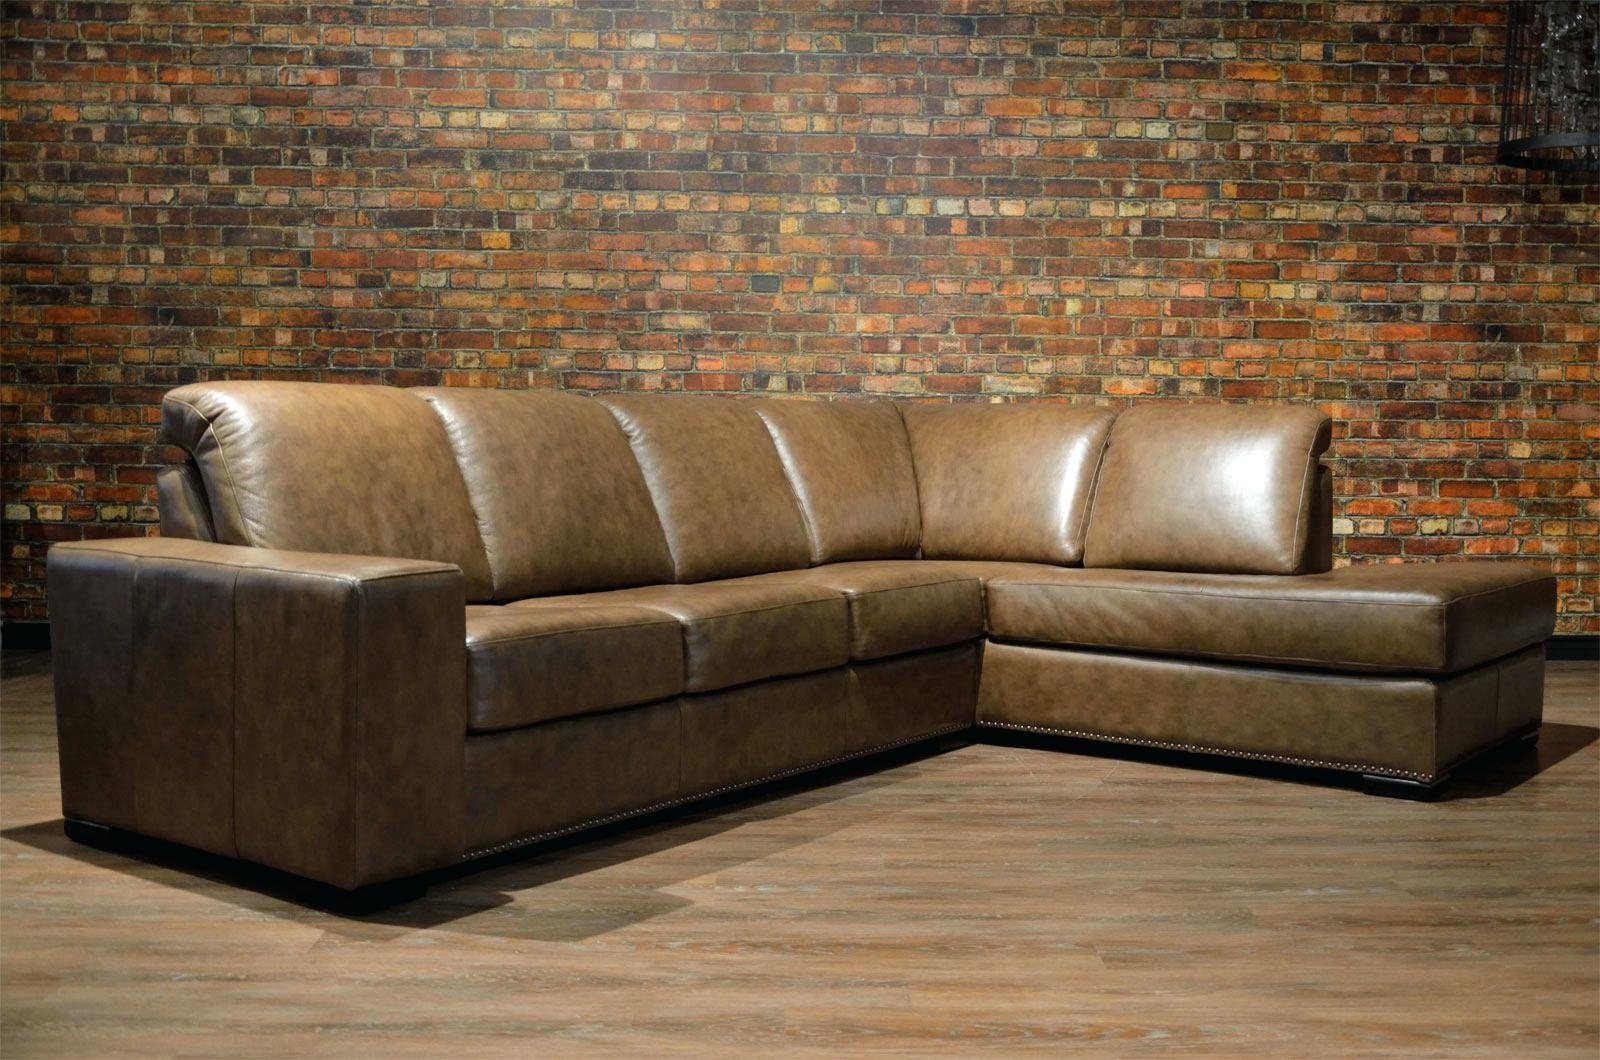 Used Leather Couches For Sale Sectional Canada Cheap Cape Town Couch Within Sectional Sofas At Bc Canada (View 9 of 10)